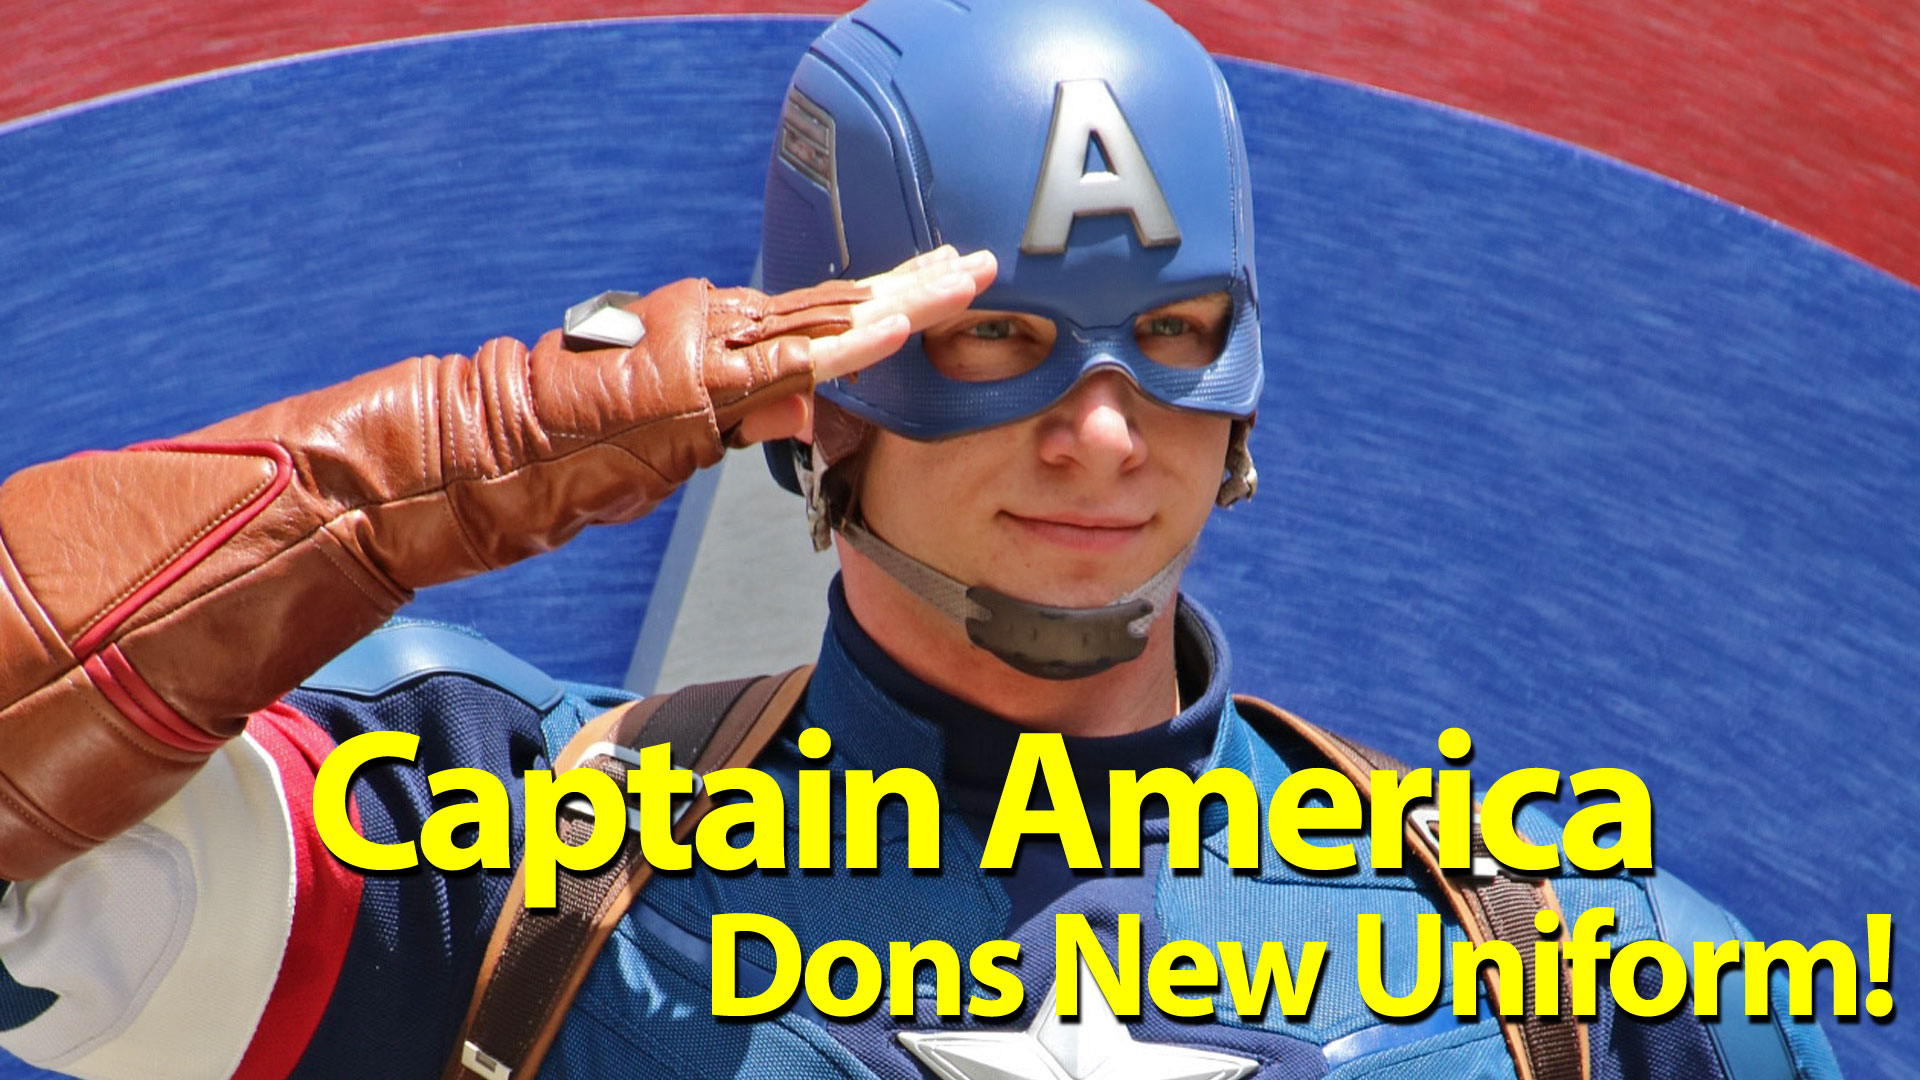 Captain America Dons New Uniform at New Location in Disney California Adventure